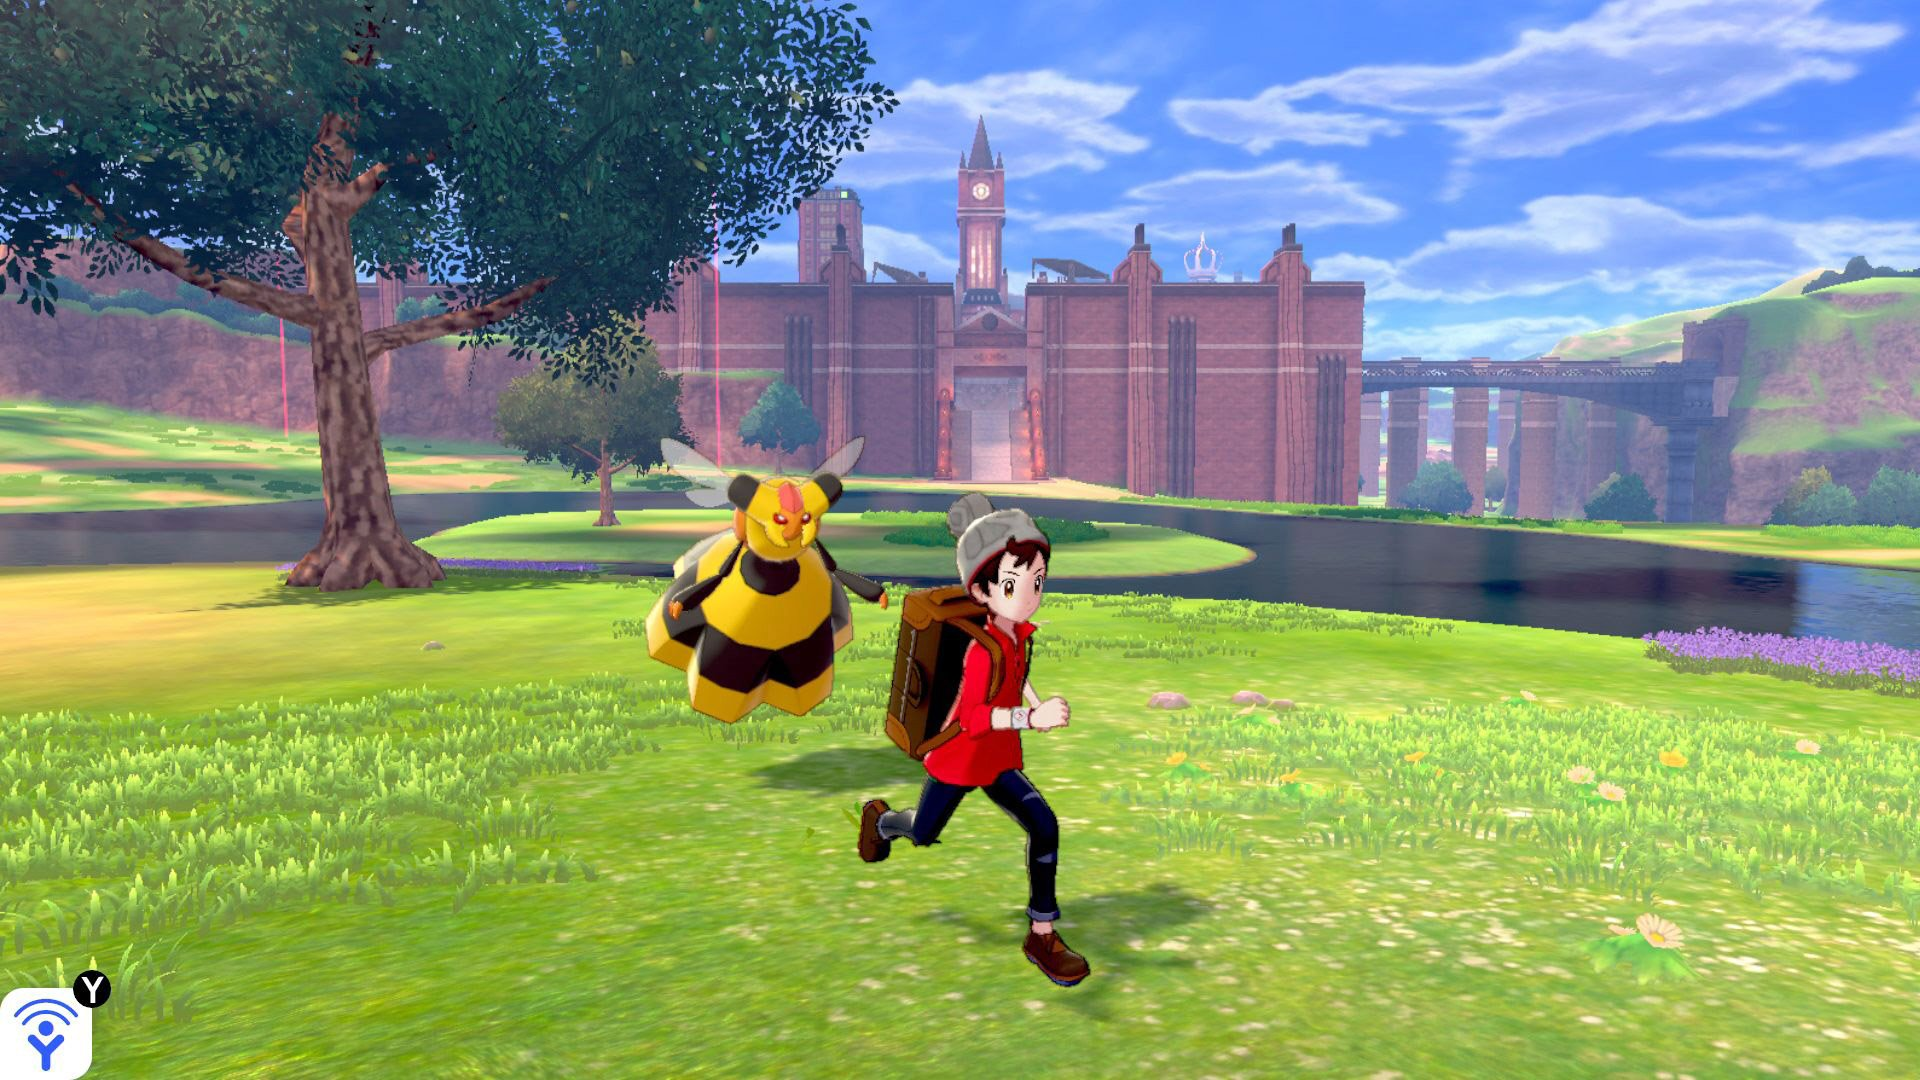 I M Stoked For Pokemon Sword And Shield But The E3 Showing Was A